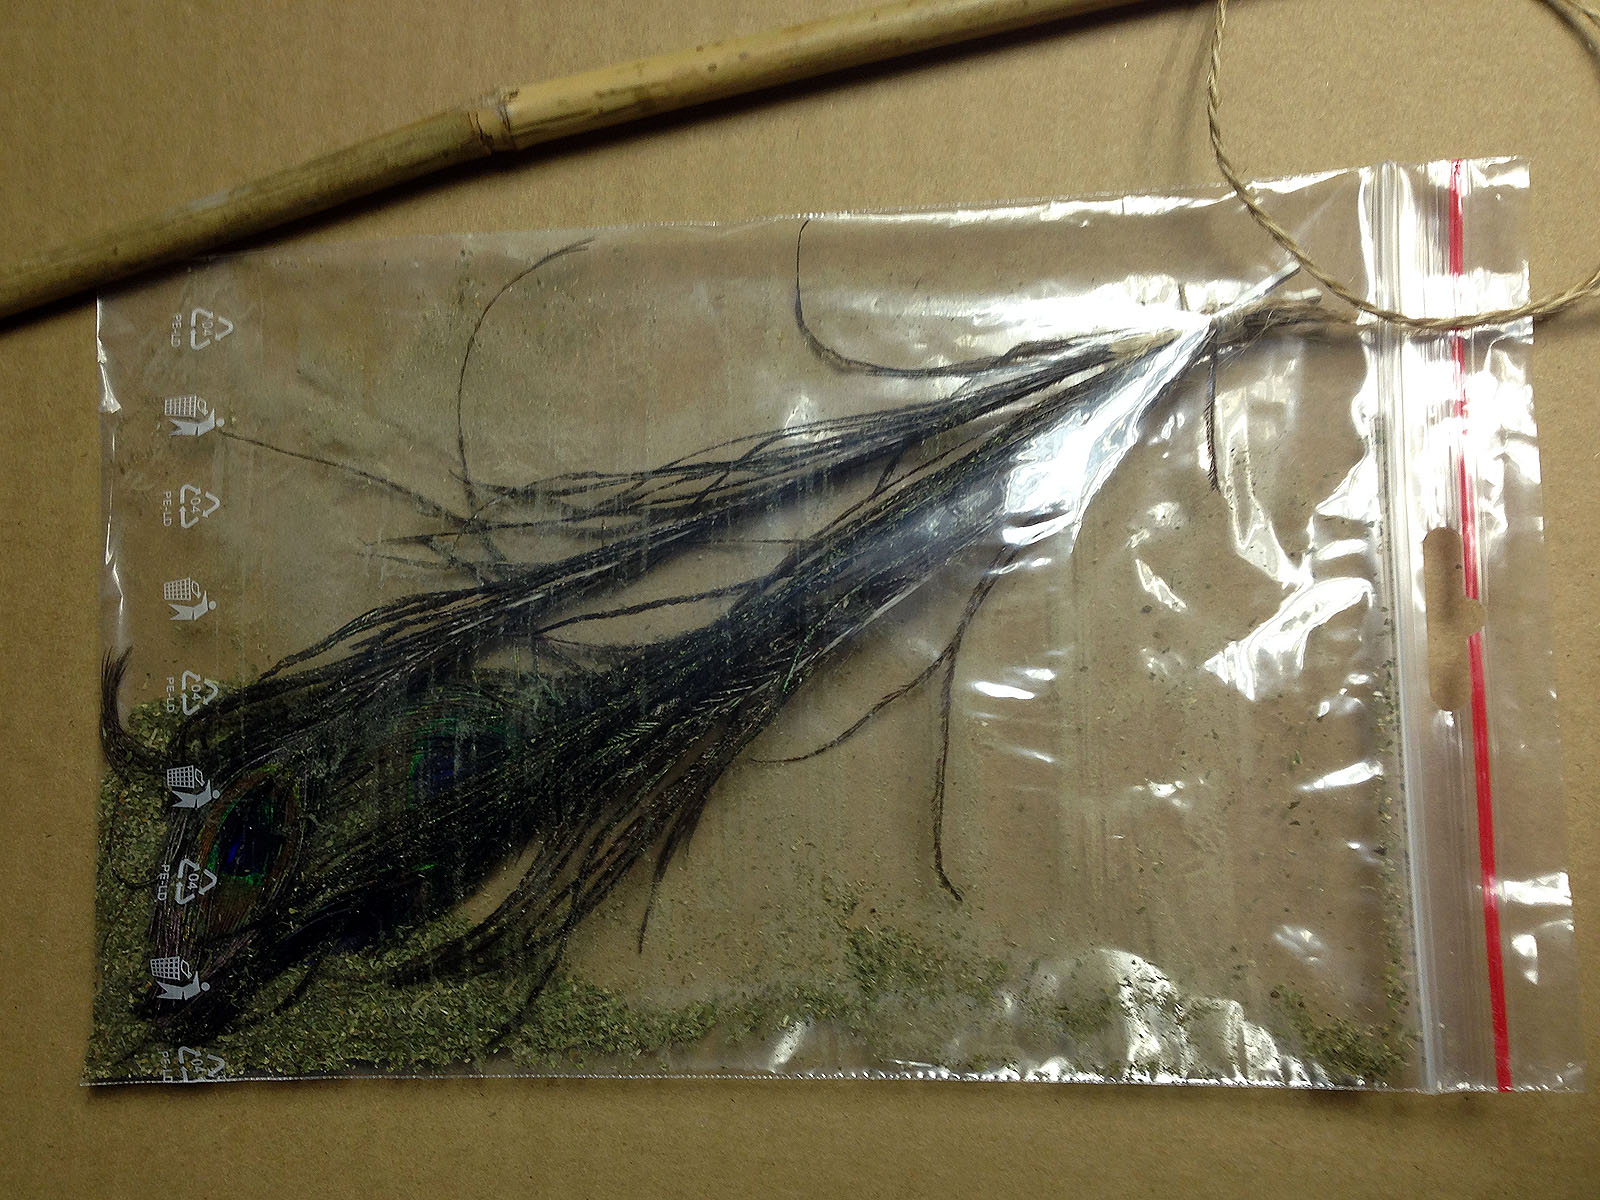 Feathers in the bag of catnip